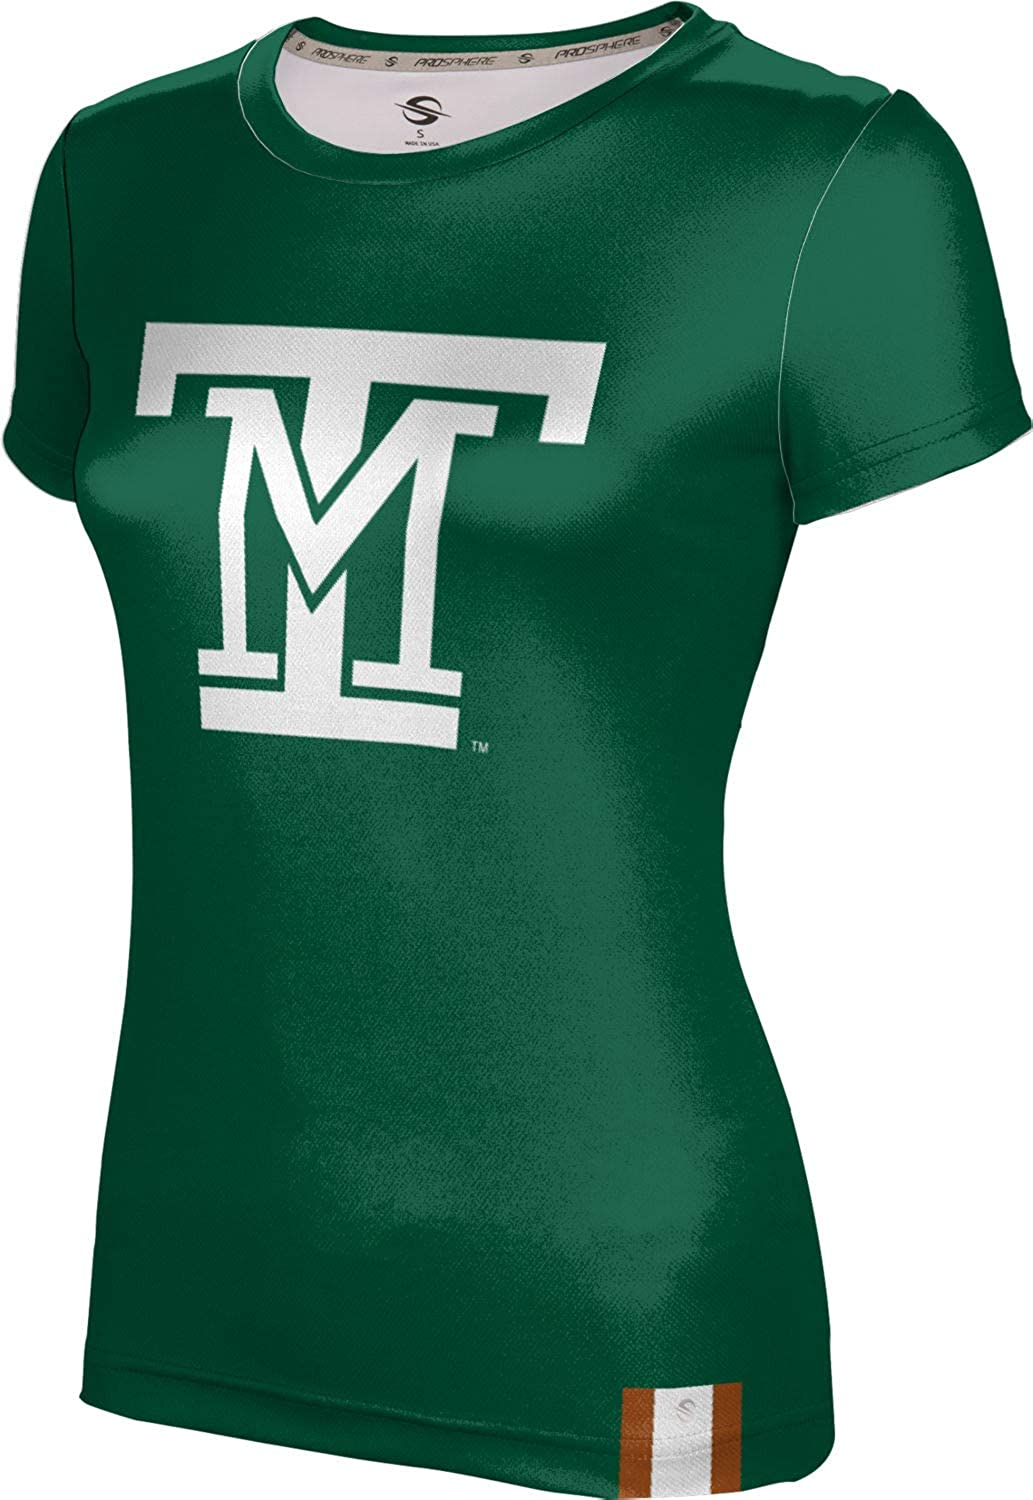 ProSphere Montana Tech of The University of Montana Girls' Performance T-Shirt (Solid)